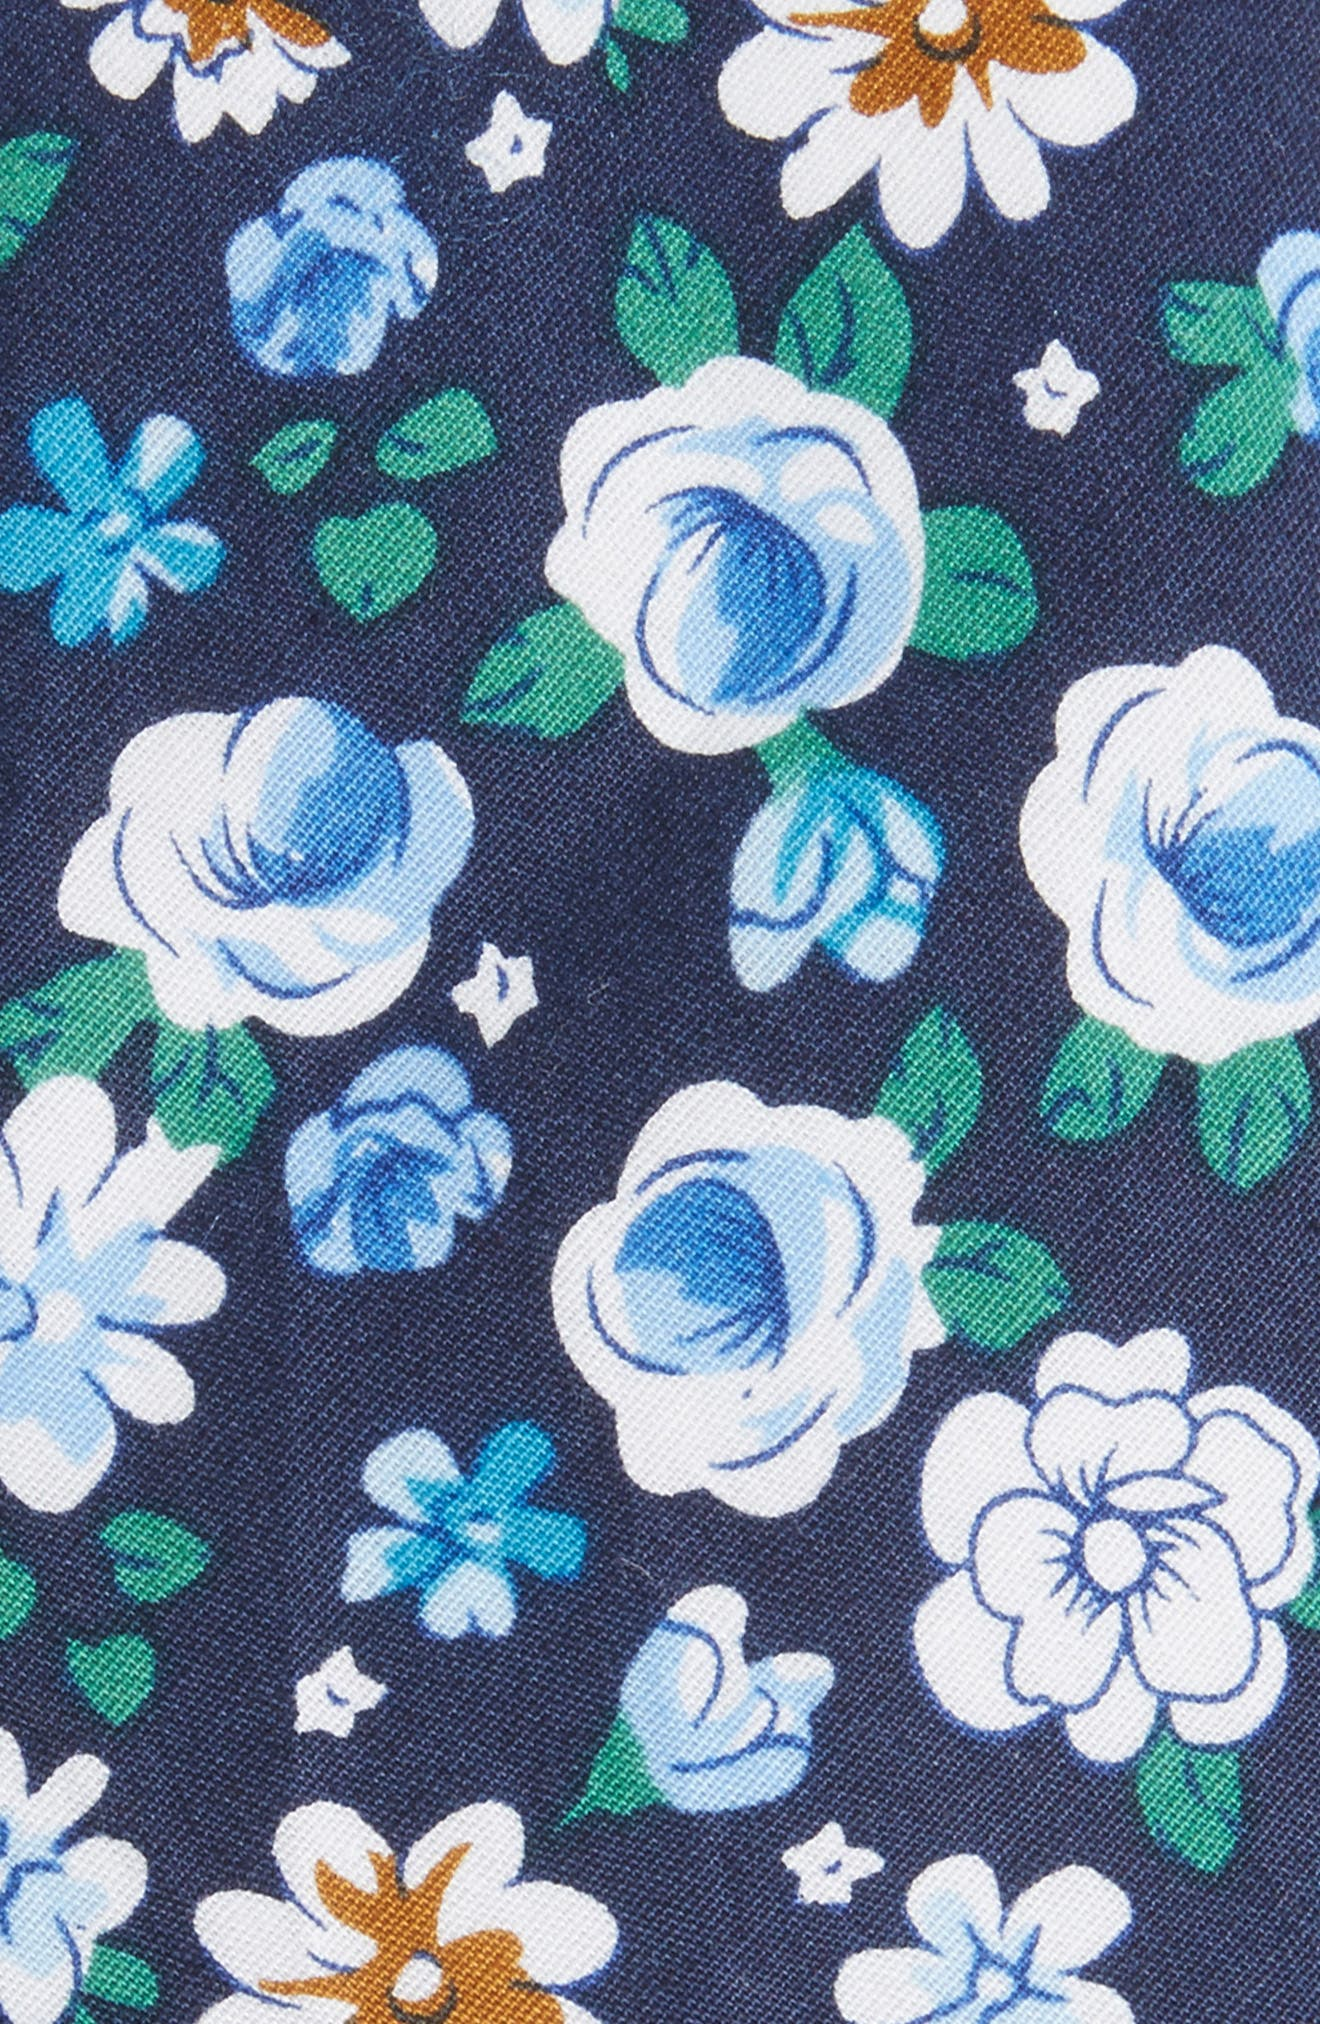 Frenso Floral Cotton Skinny Tie,                             Alternate thumbnail 2, color,                             Blue